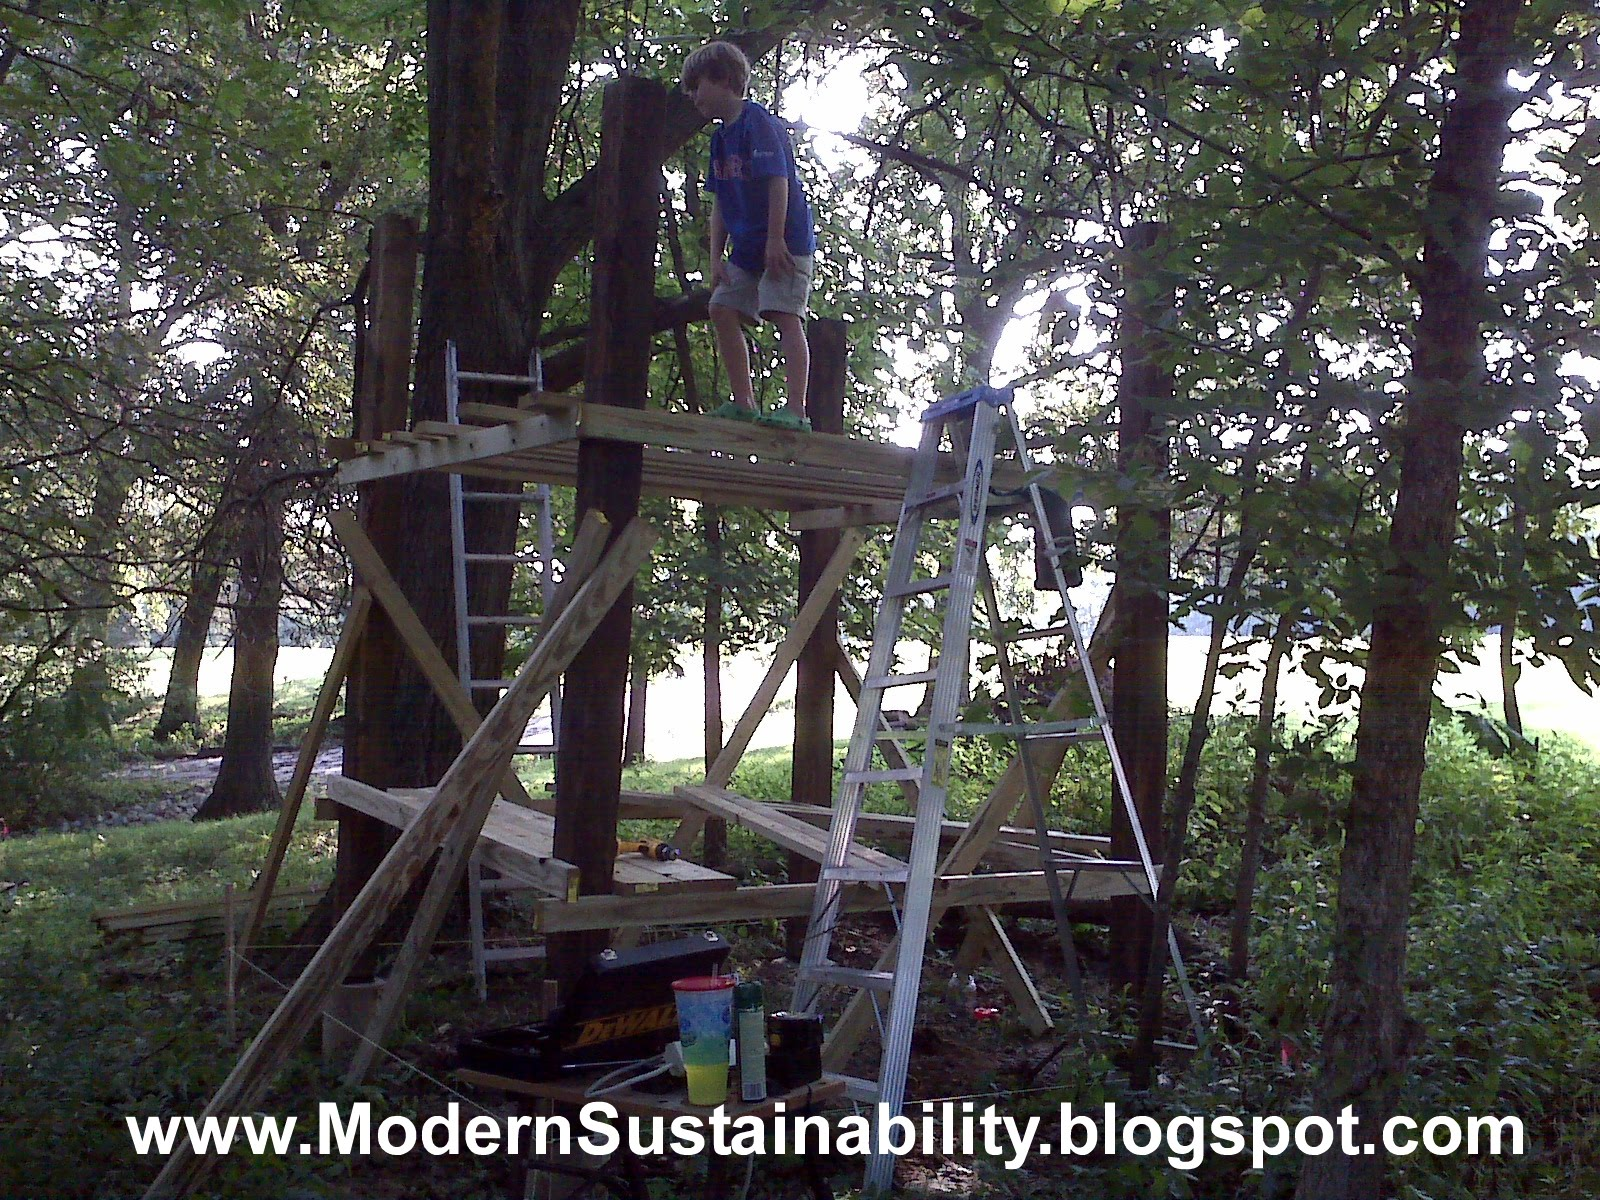 Modern Sustainability...old-fashioned methods: How to build a tree on tree house stained glass, city house deck designs, tree house gazebo, tree house painting, tree house deck railing, tree house interior designs, tree house pergola designs, tree house wood, tree house patios, tree house architecture, tree house home, tree house bedroom designs, tree house landscaping, small house deck designs, tree house roof designs, tree house kitchen, tree house bridges, tree house deck construction, tree house hot tubs, tree house construction materials,